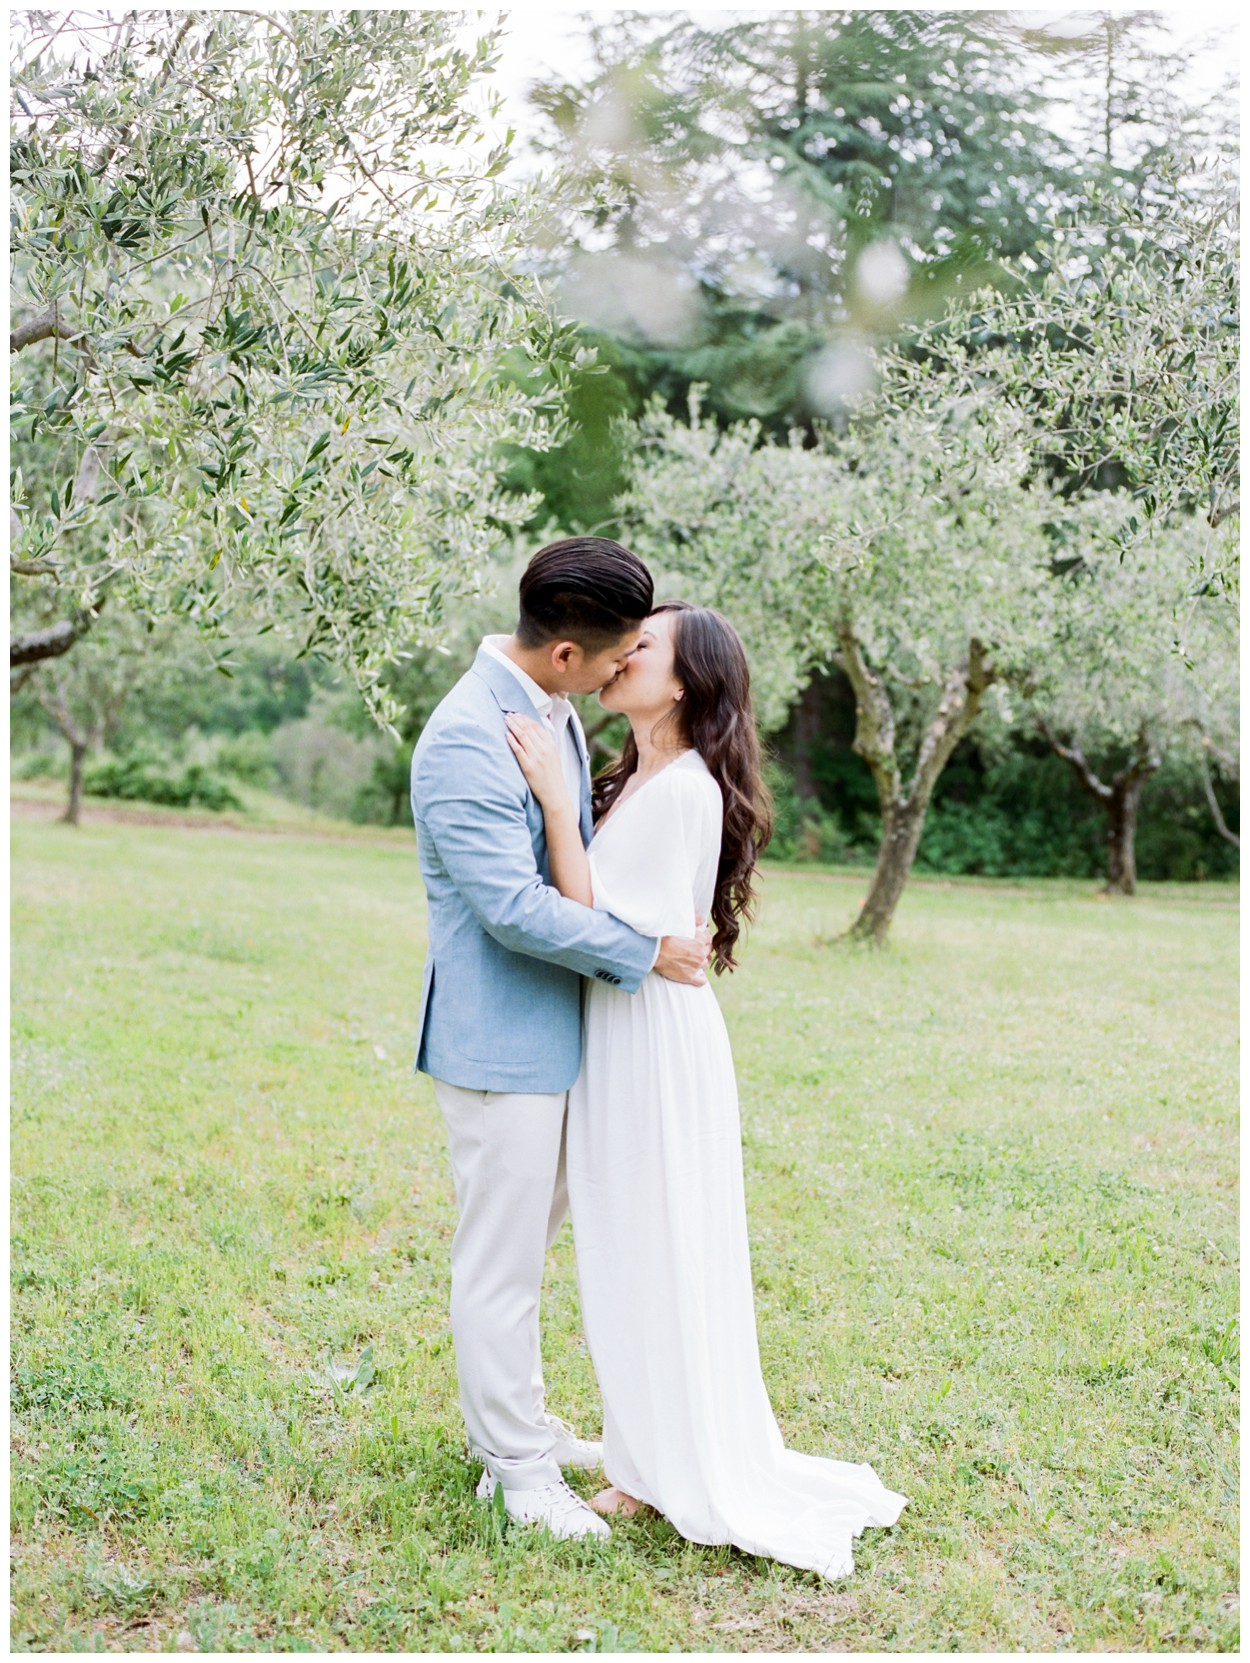 Spring Engagement at Villa Montanare in Cortona Tuscany, Italy by fine art wedding photographer Lissa Ryan Photography couple in an olive grove